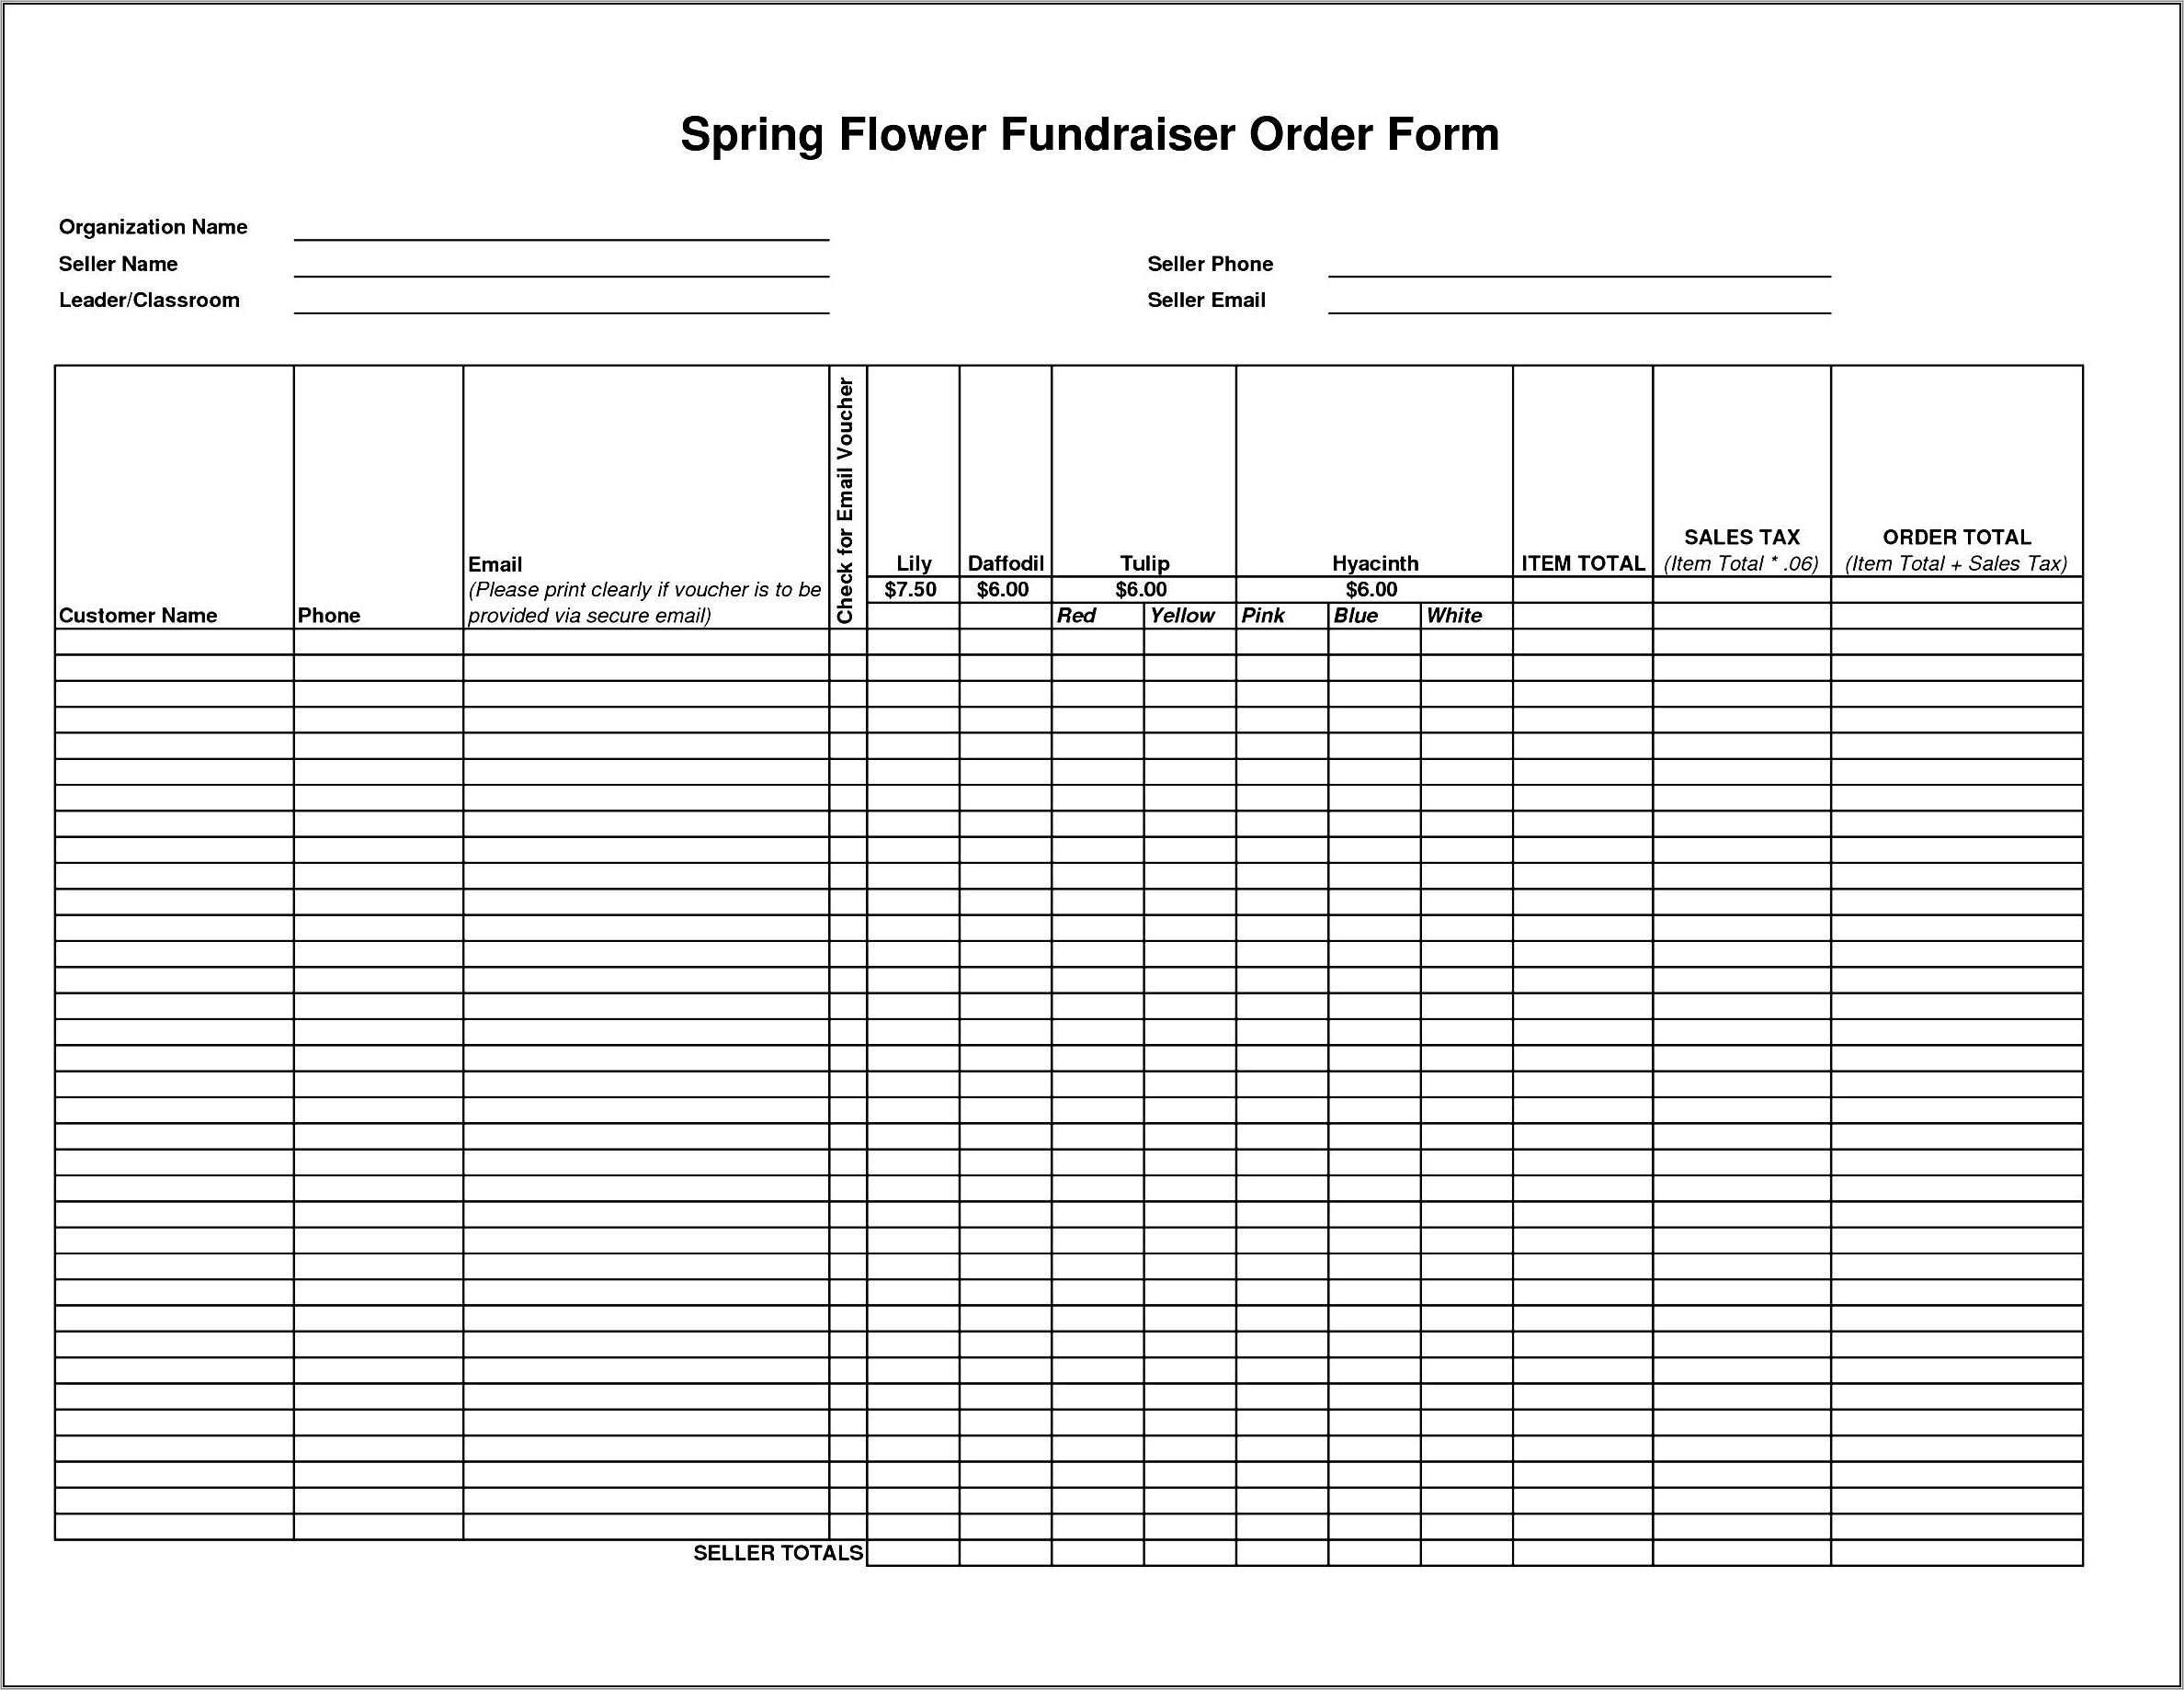 Fundraiser Order Form Template Free Download